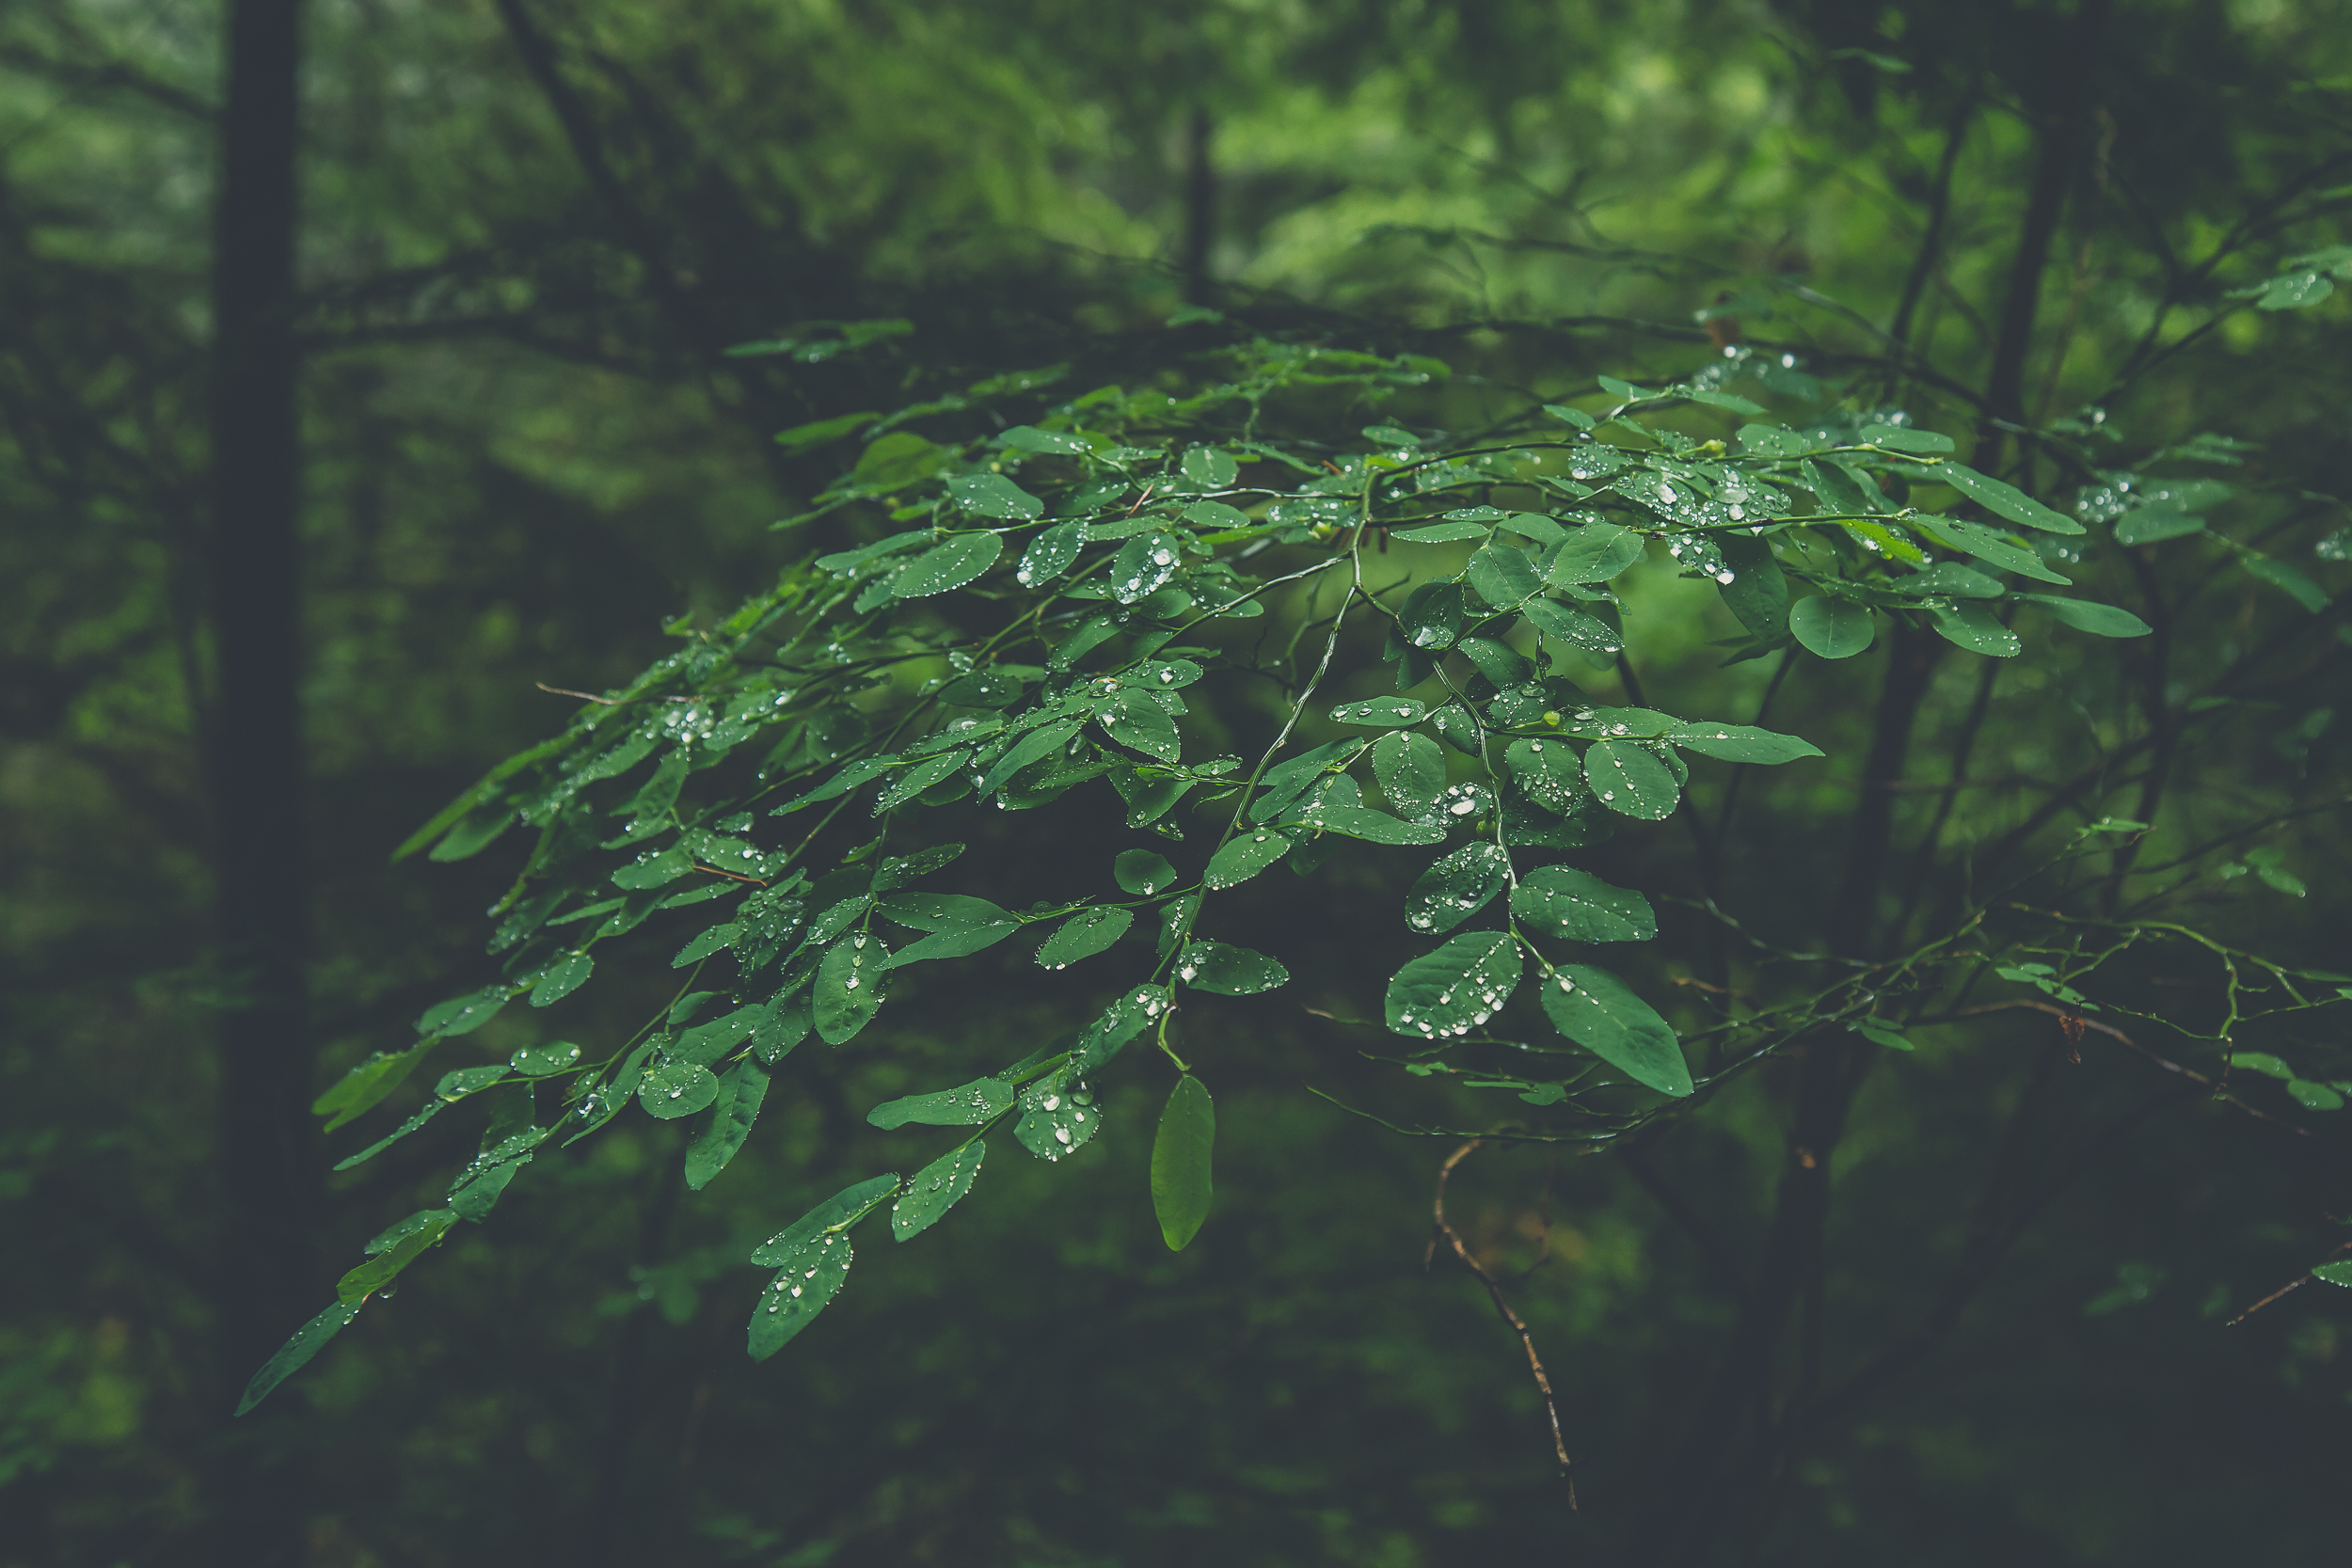 forest-leaves-with-dew-drops.jpg